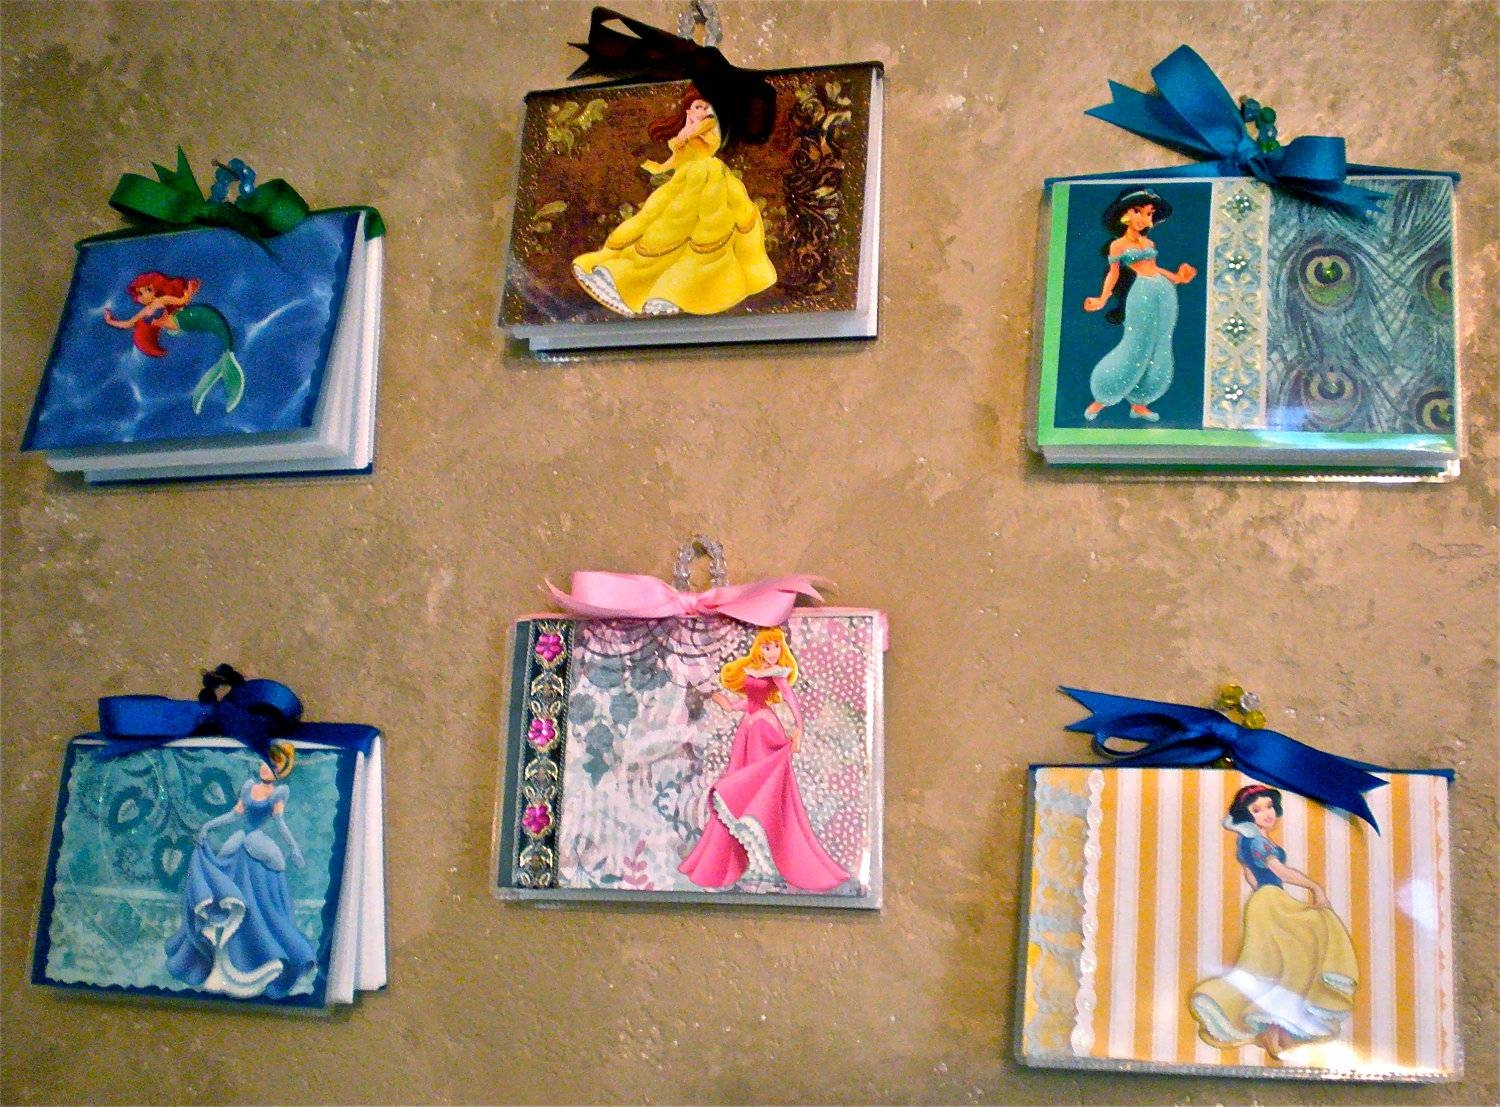 6 Disney Princess Wall Art / Albums In Most Recent Disney Princess Wall Art (View 4 of 20)